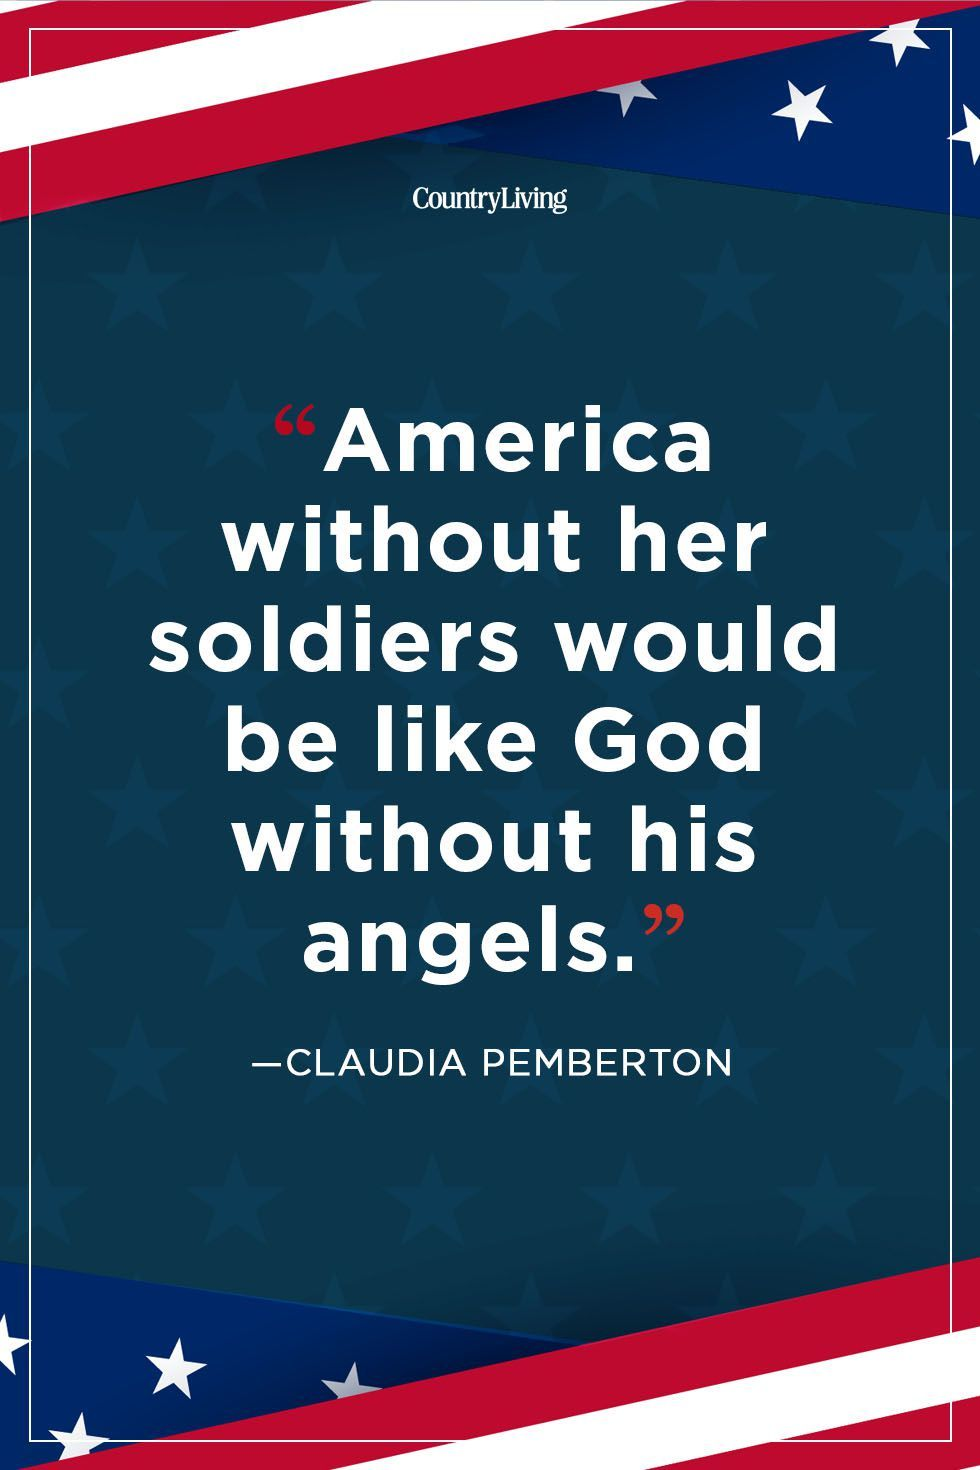 40 Patriotic Quotes That Will Make You Proud To Be An American Patriotic Quotes Fourth Of July Quotes July Quotes